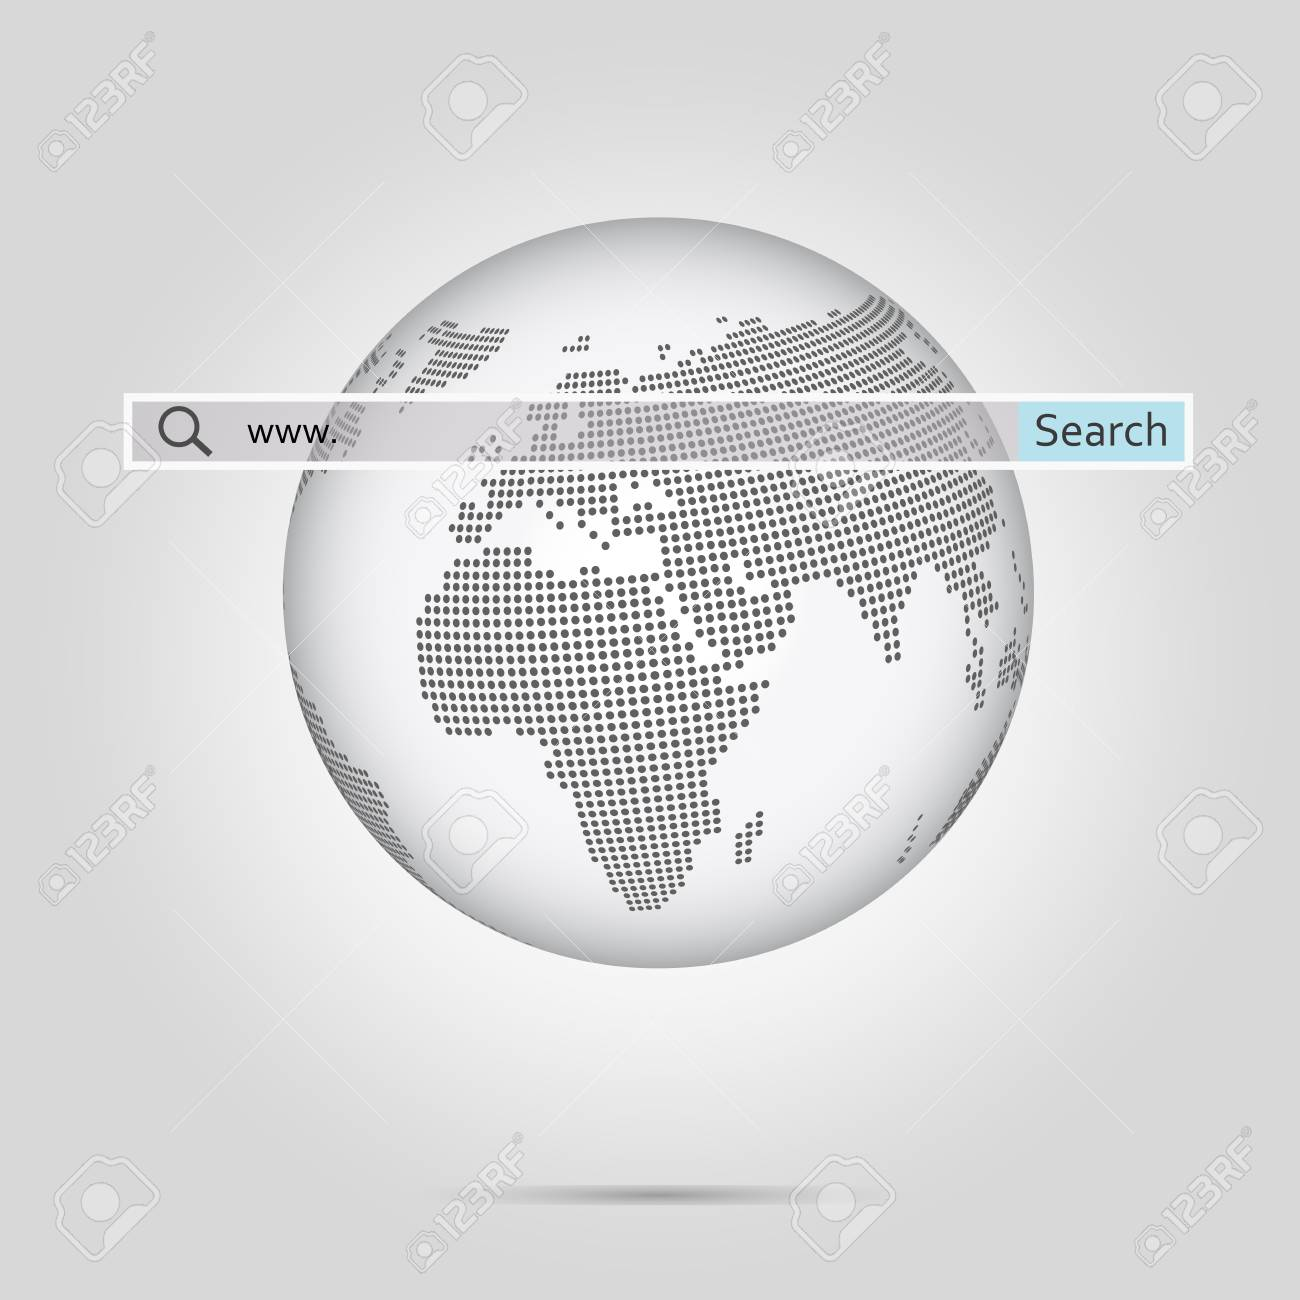 Monochrome globe with halftone dotted world map vector illustration monochrome globe with halftone dotted world map vector illustration stock illustration 77213023 gumiabroncs Images